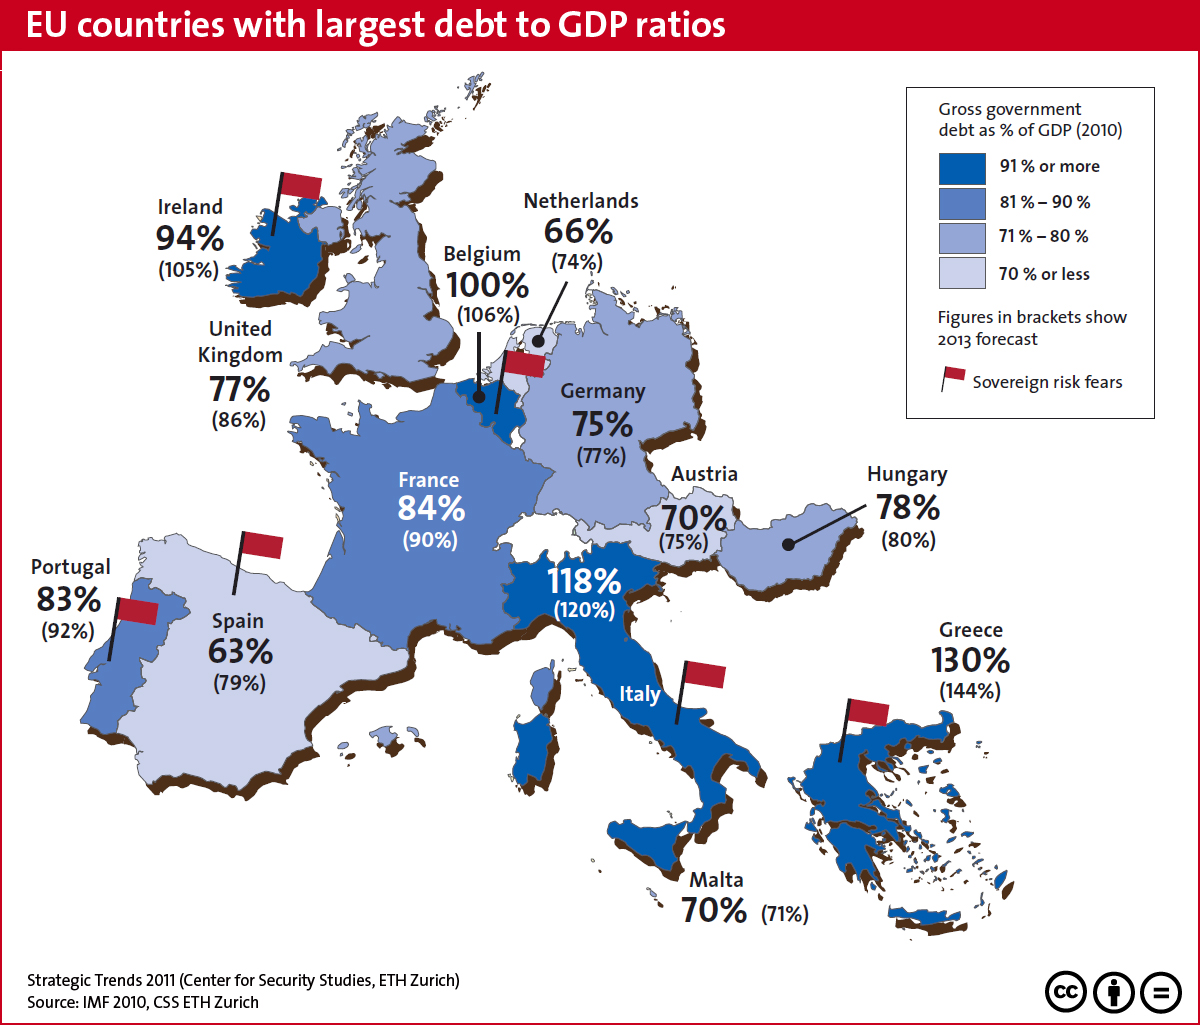 02_eu_countries_with_largest-debt_to_gdp